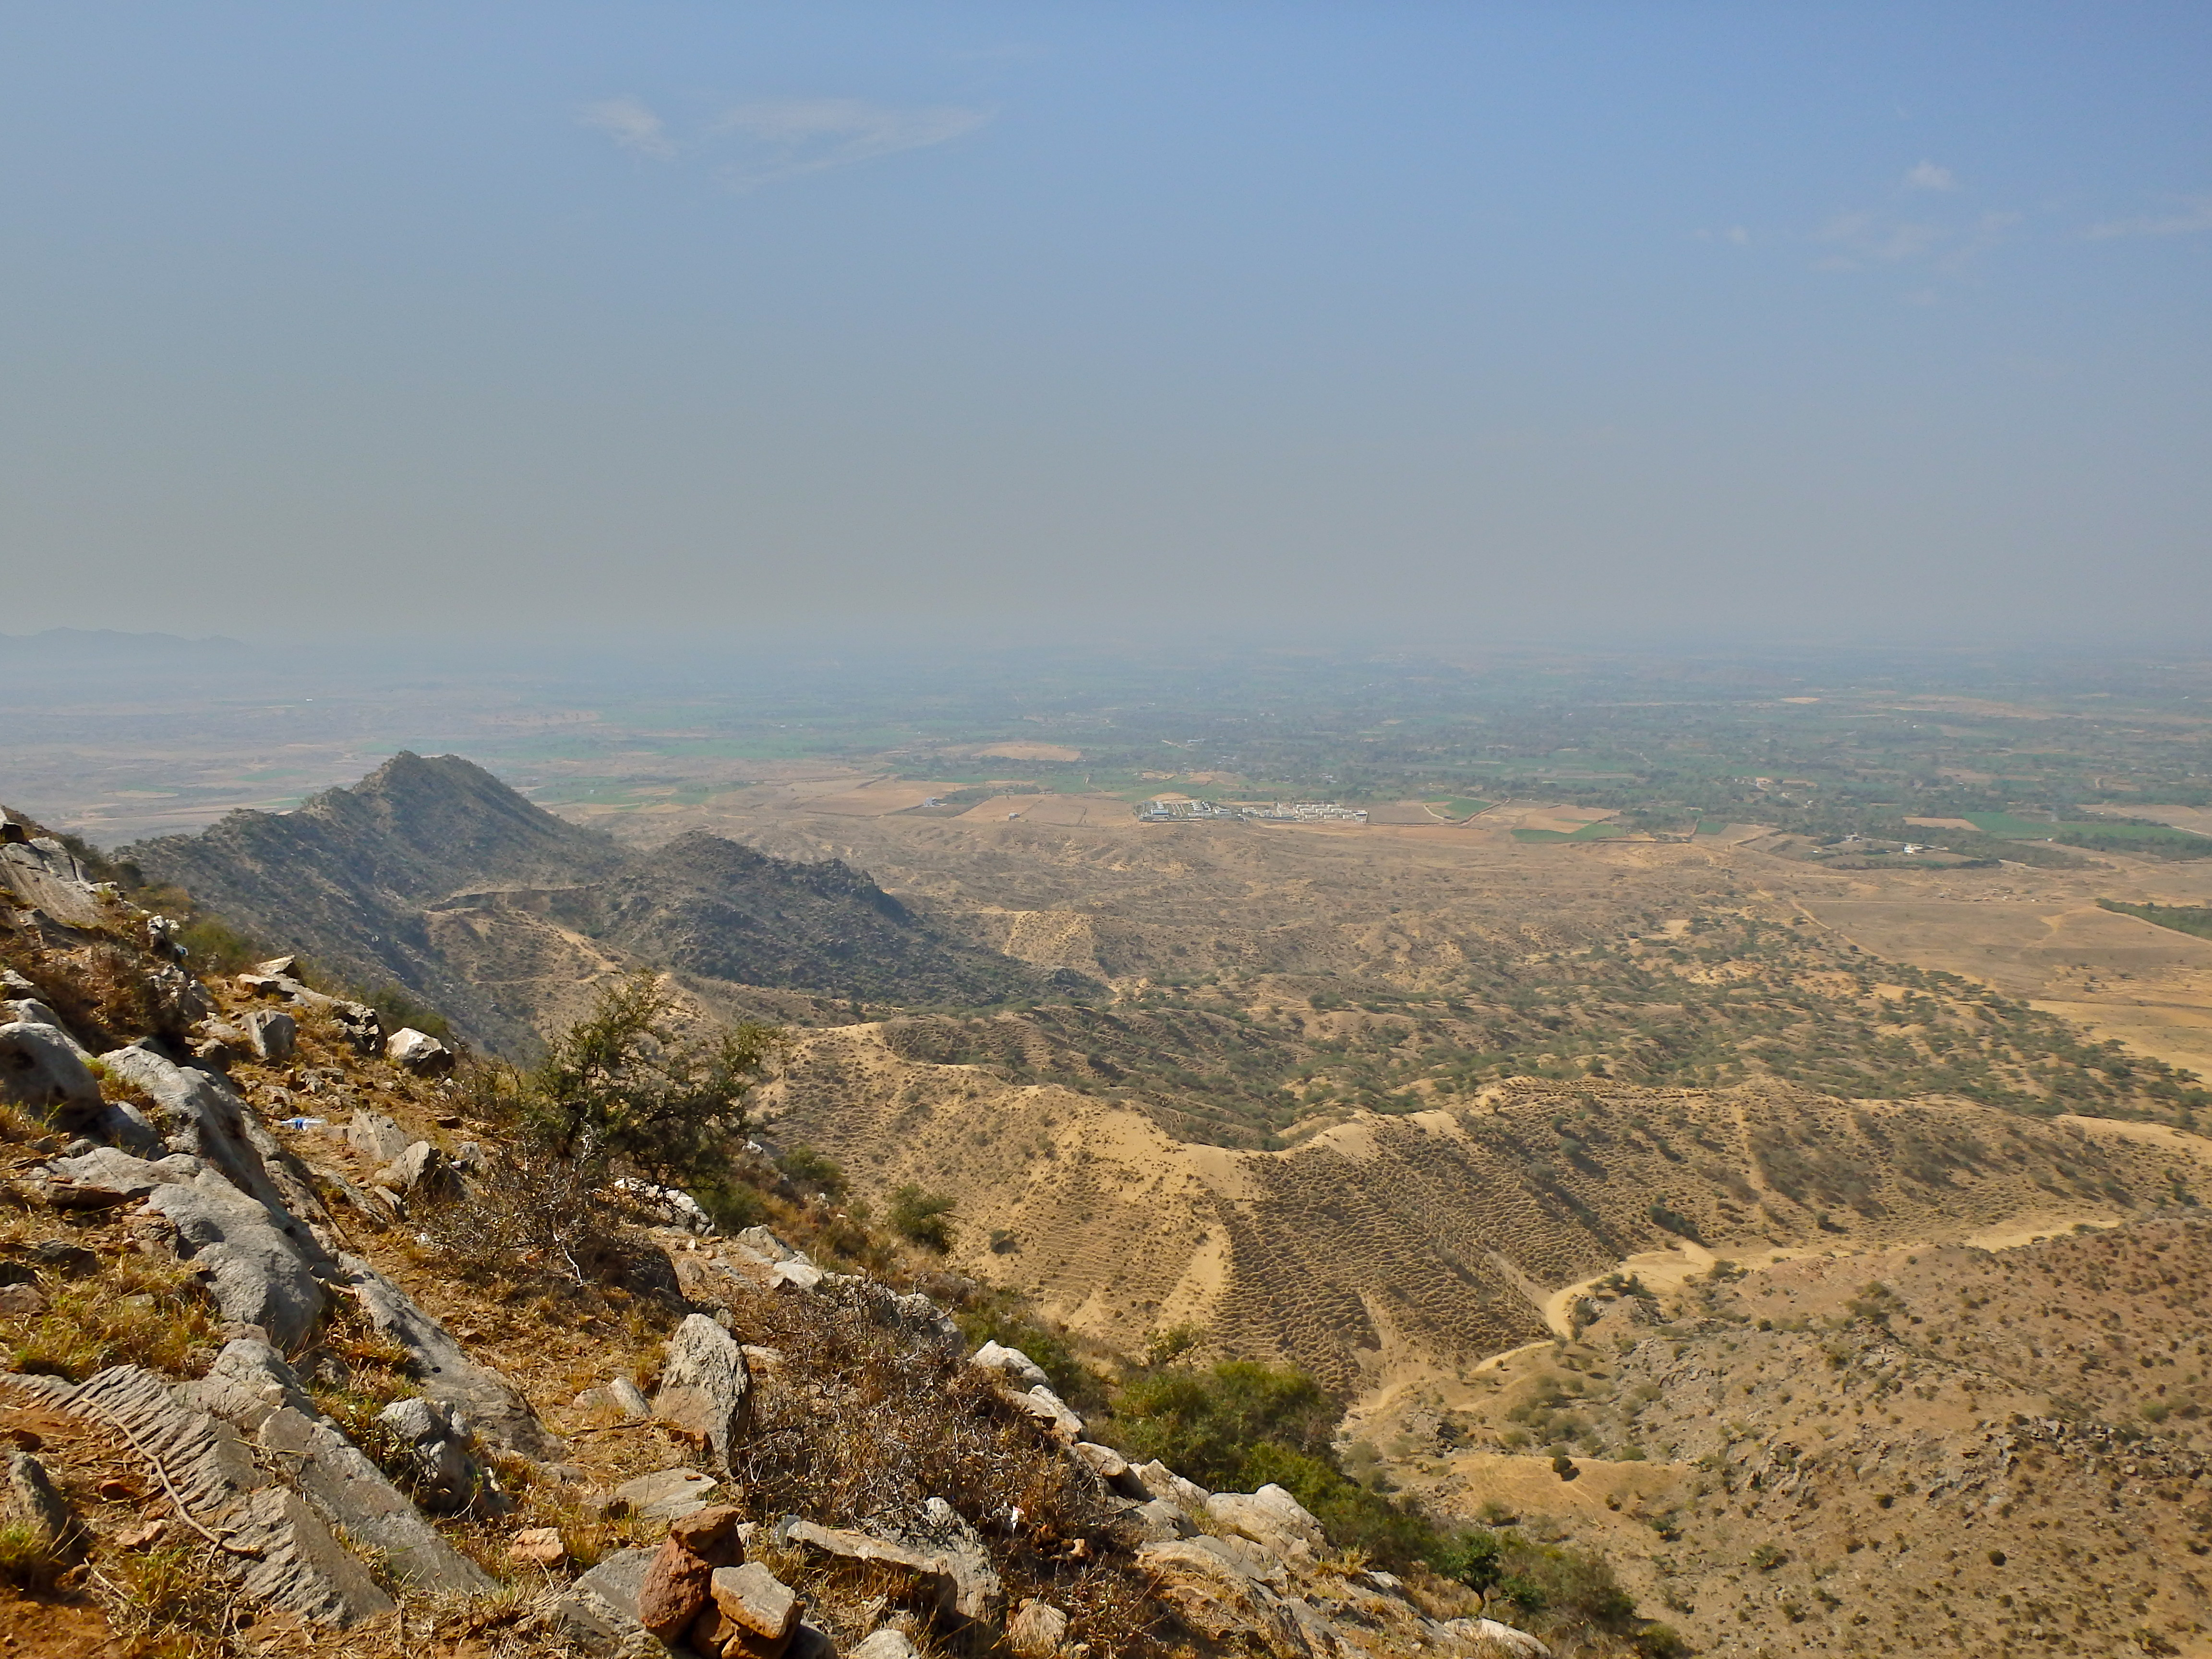 scenery around pushkar india what to see in india where to go in india where can i ride camels in india